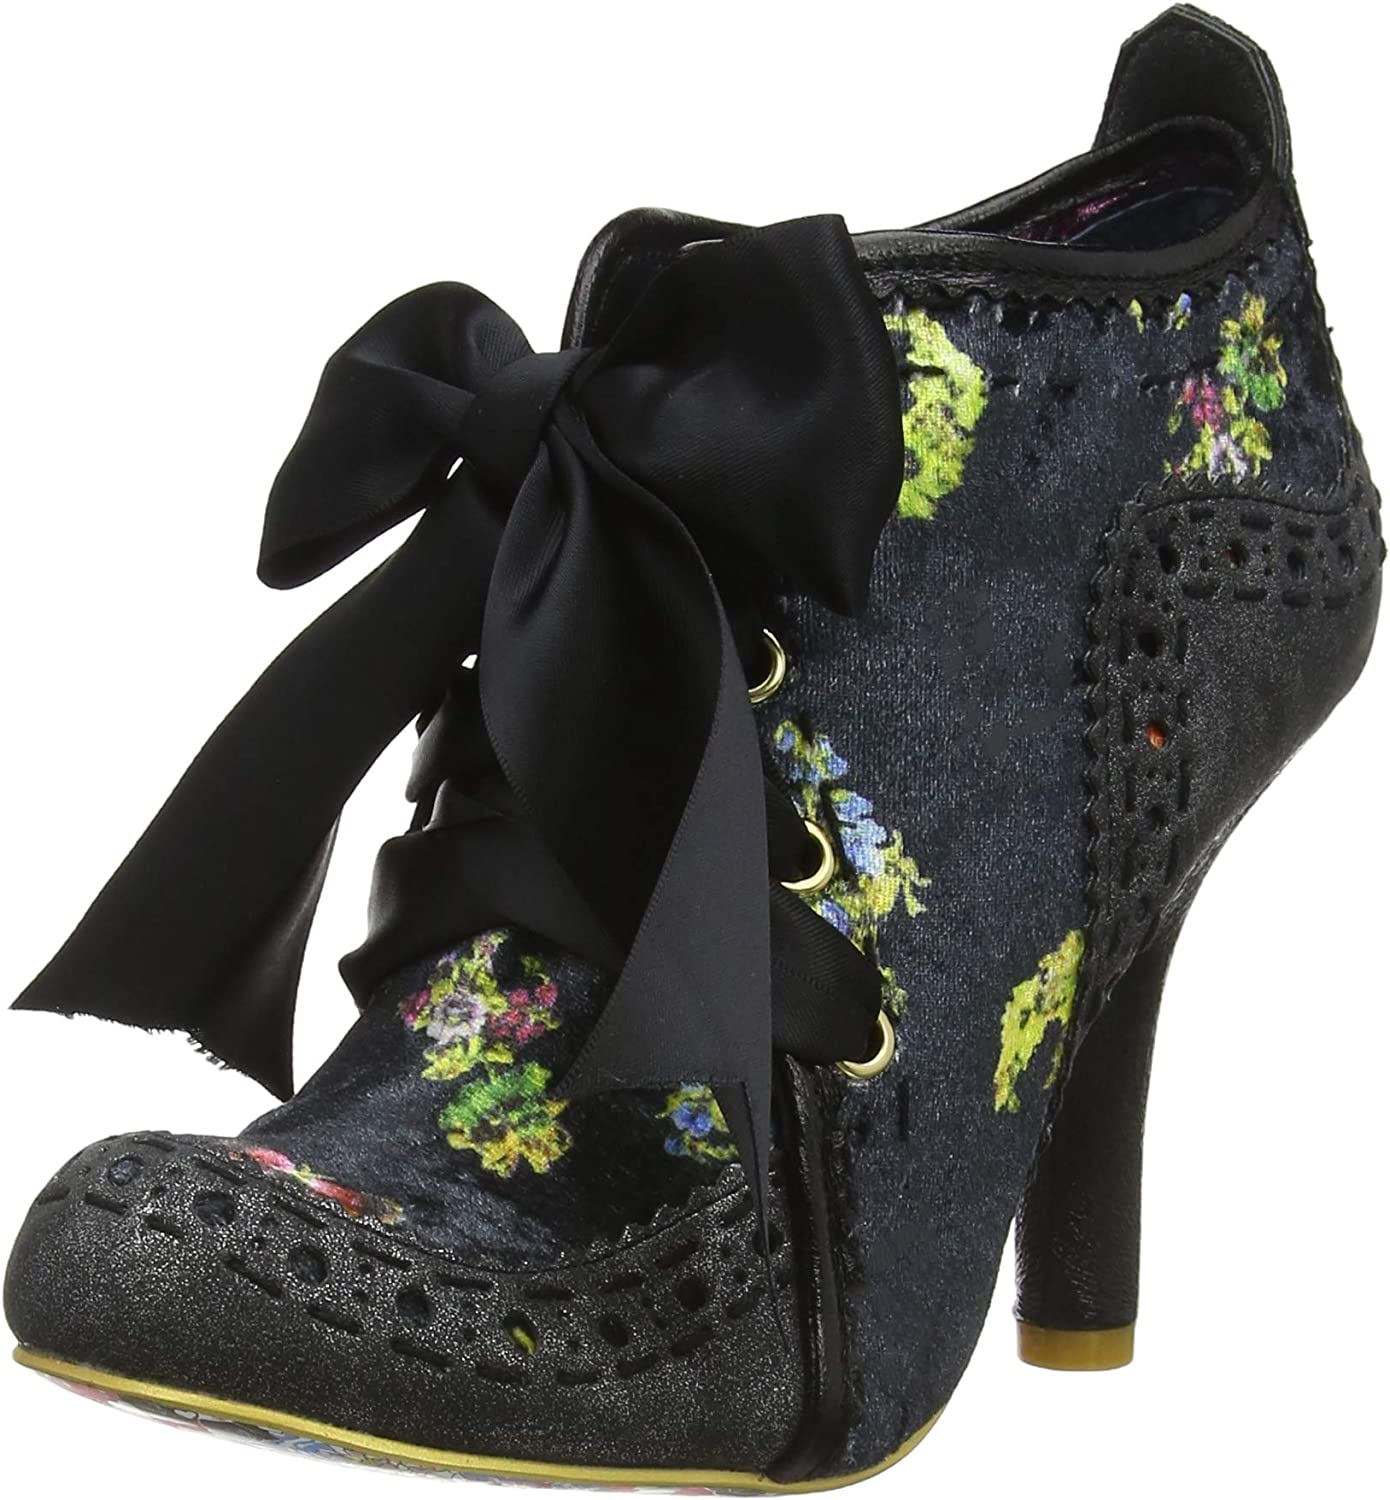 Irregular Choice Abigail's Third Party Womens Ankle Boots